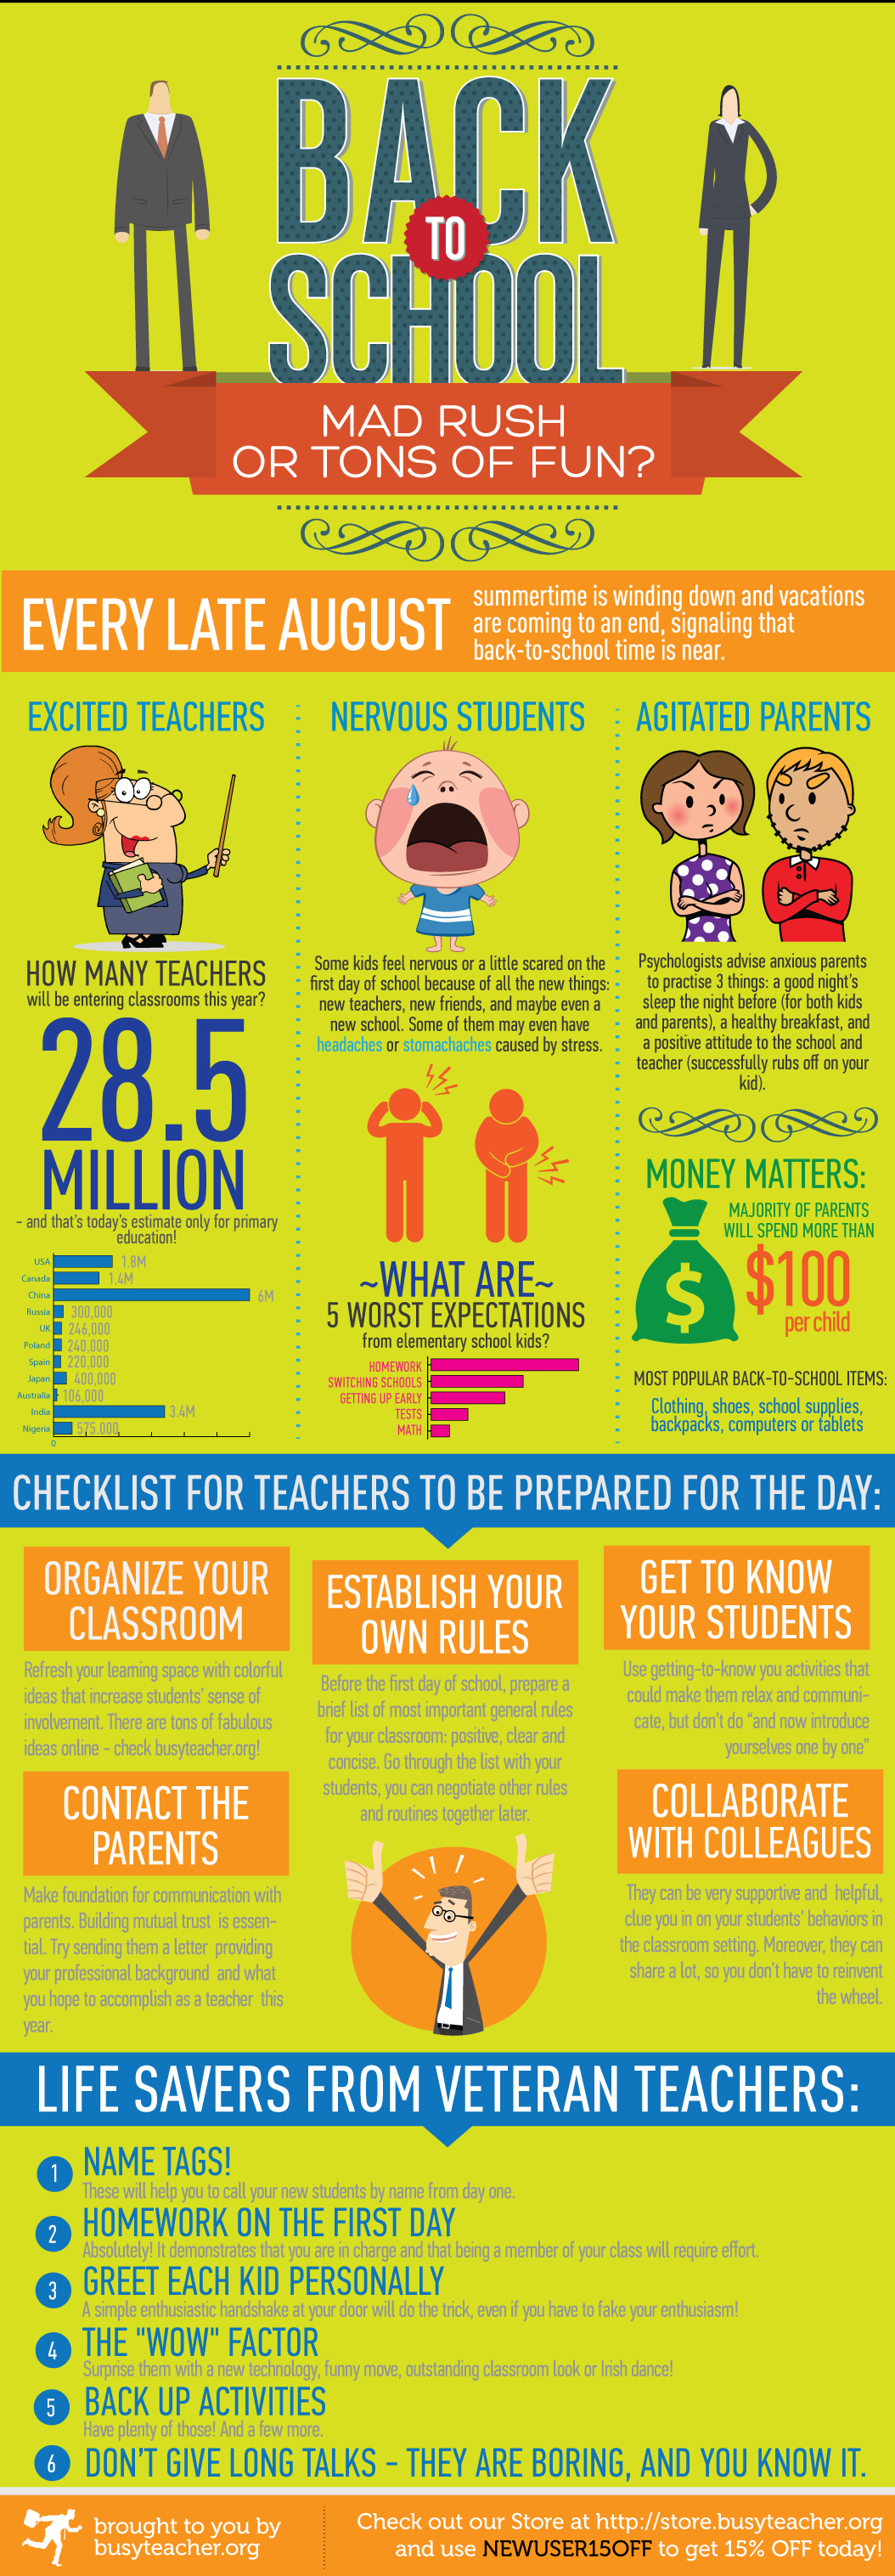 Back to School — Mad Rush or Tons of Fun? [INFOGRAPHIC]